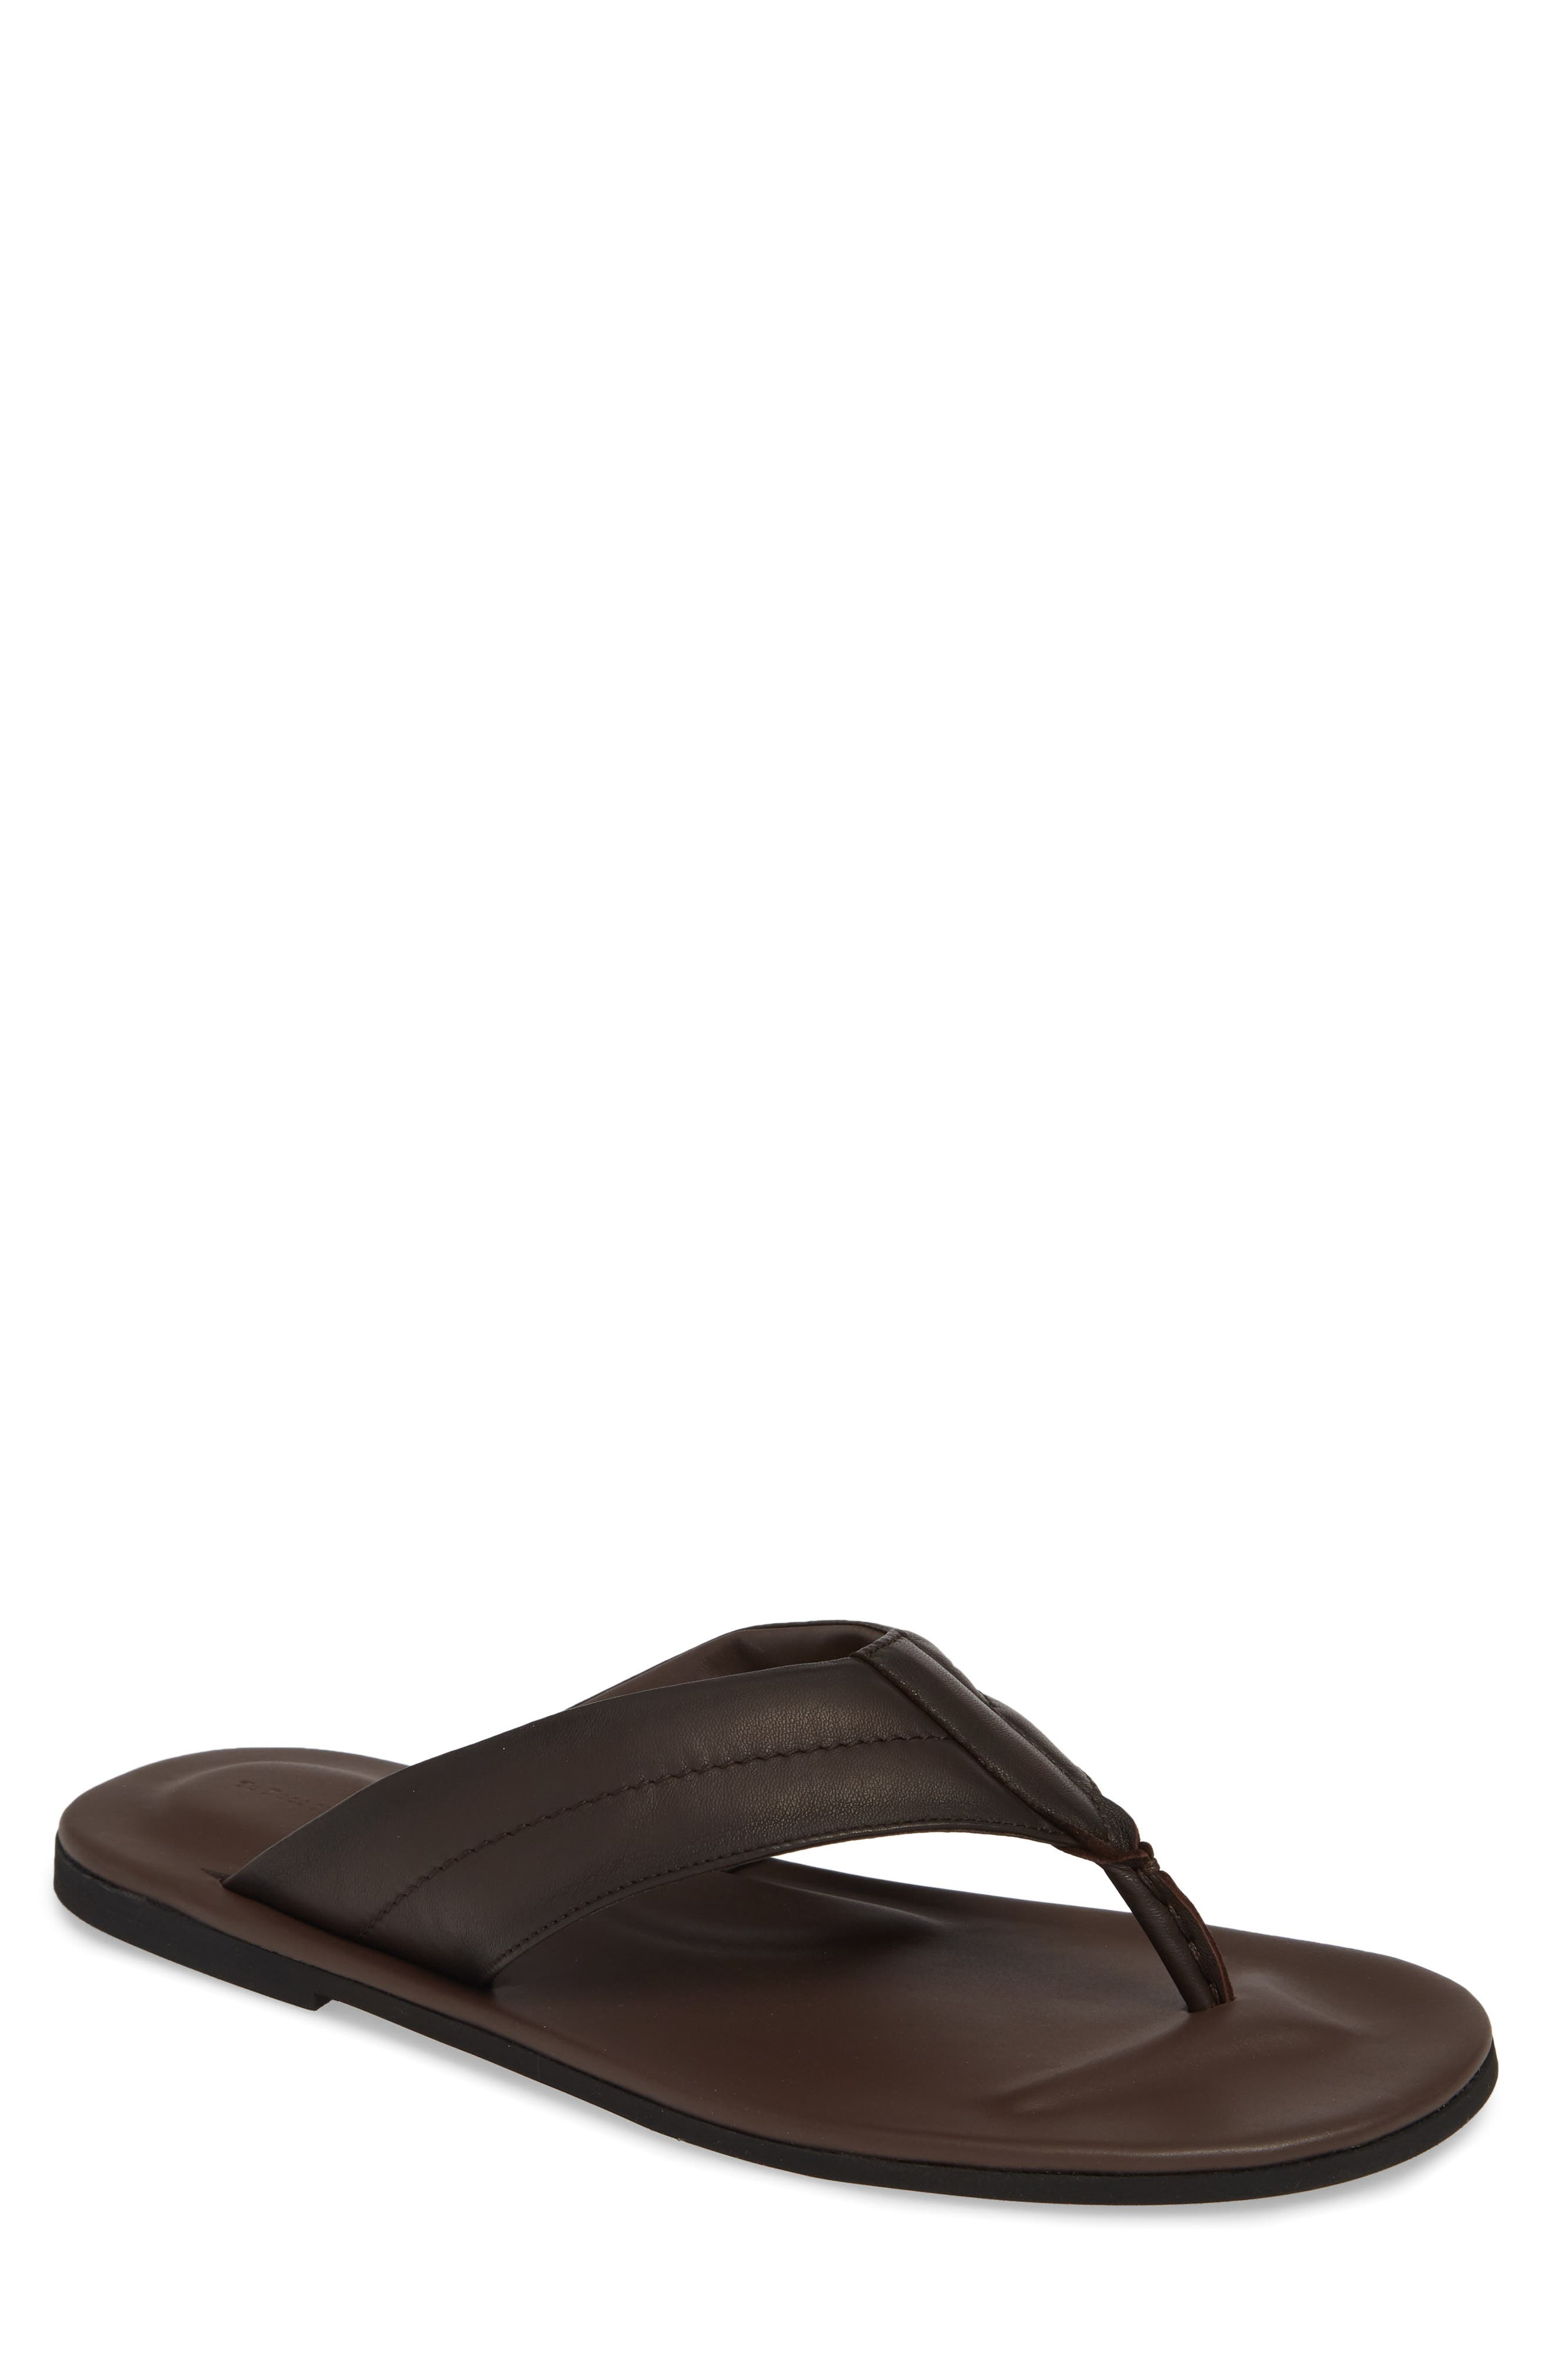 TO BOOT NEW YORK Grande Flip Flop, Main, color, BROWN LEATHER